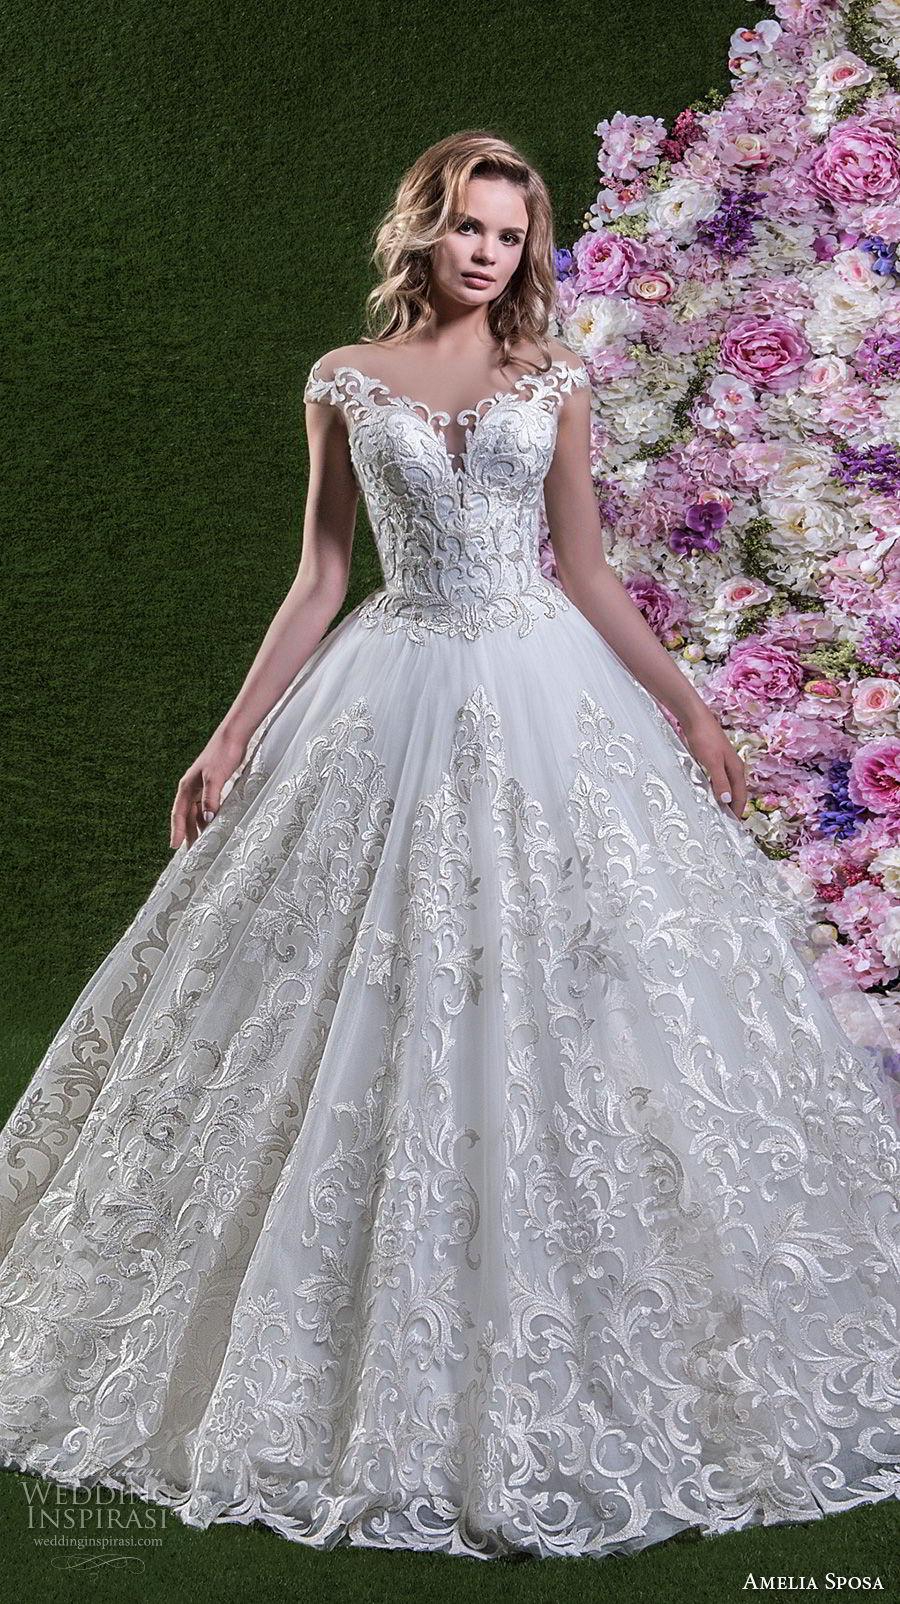 amelia sposa 2018 bridal cap sleeves off shoulder sweetheart neckline full embellishment princess ball gown wedding dress open v back chapel train (lorena) mv